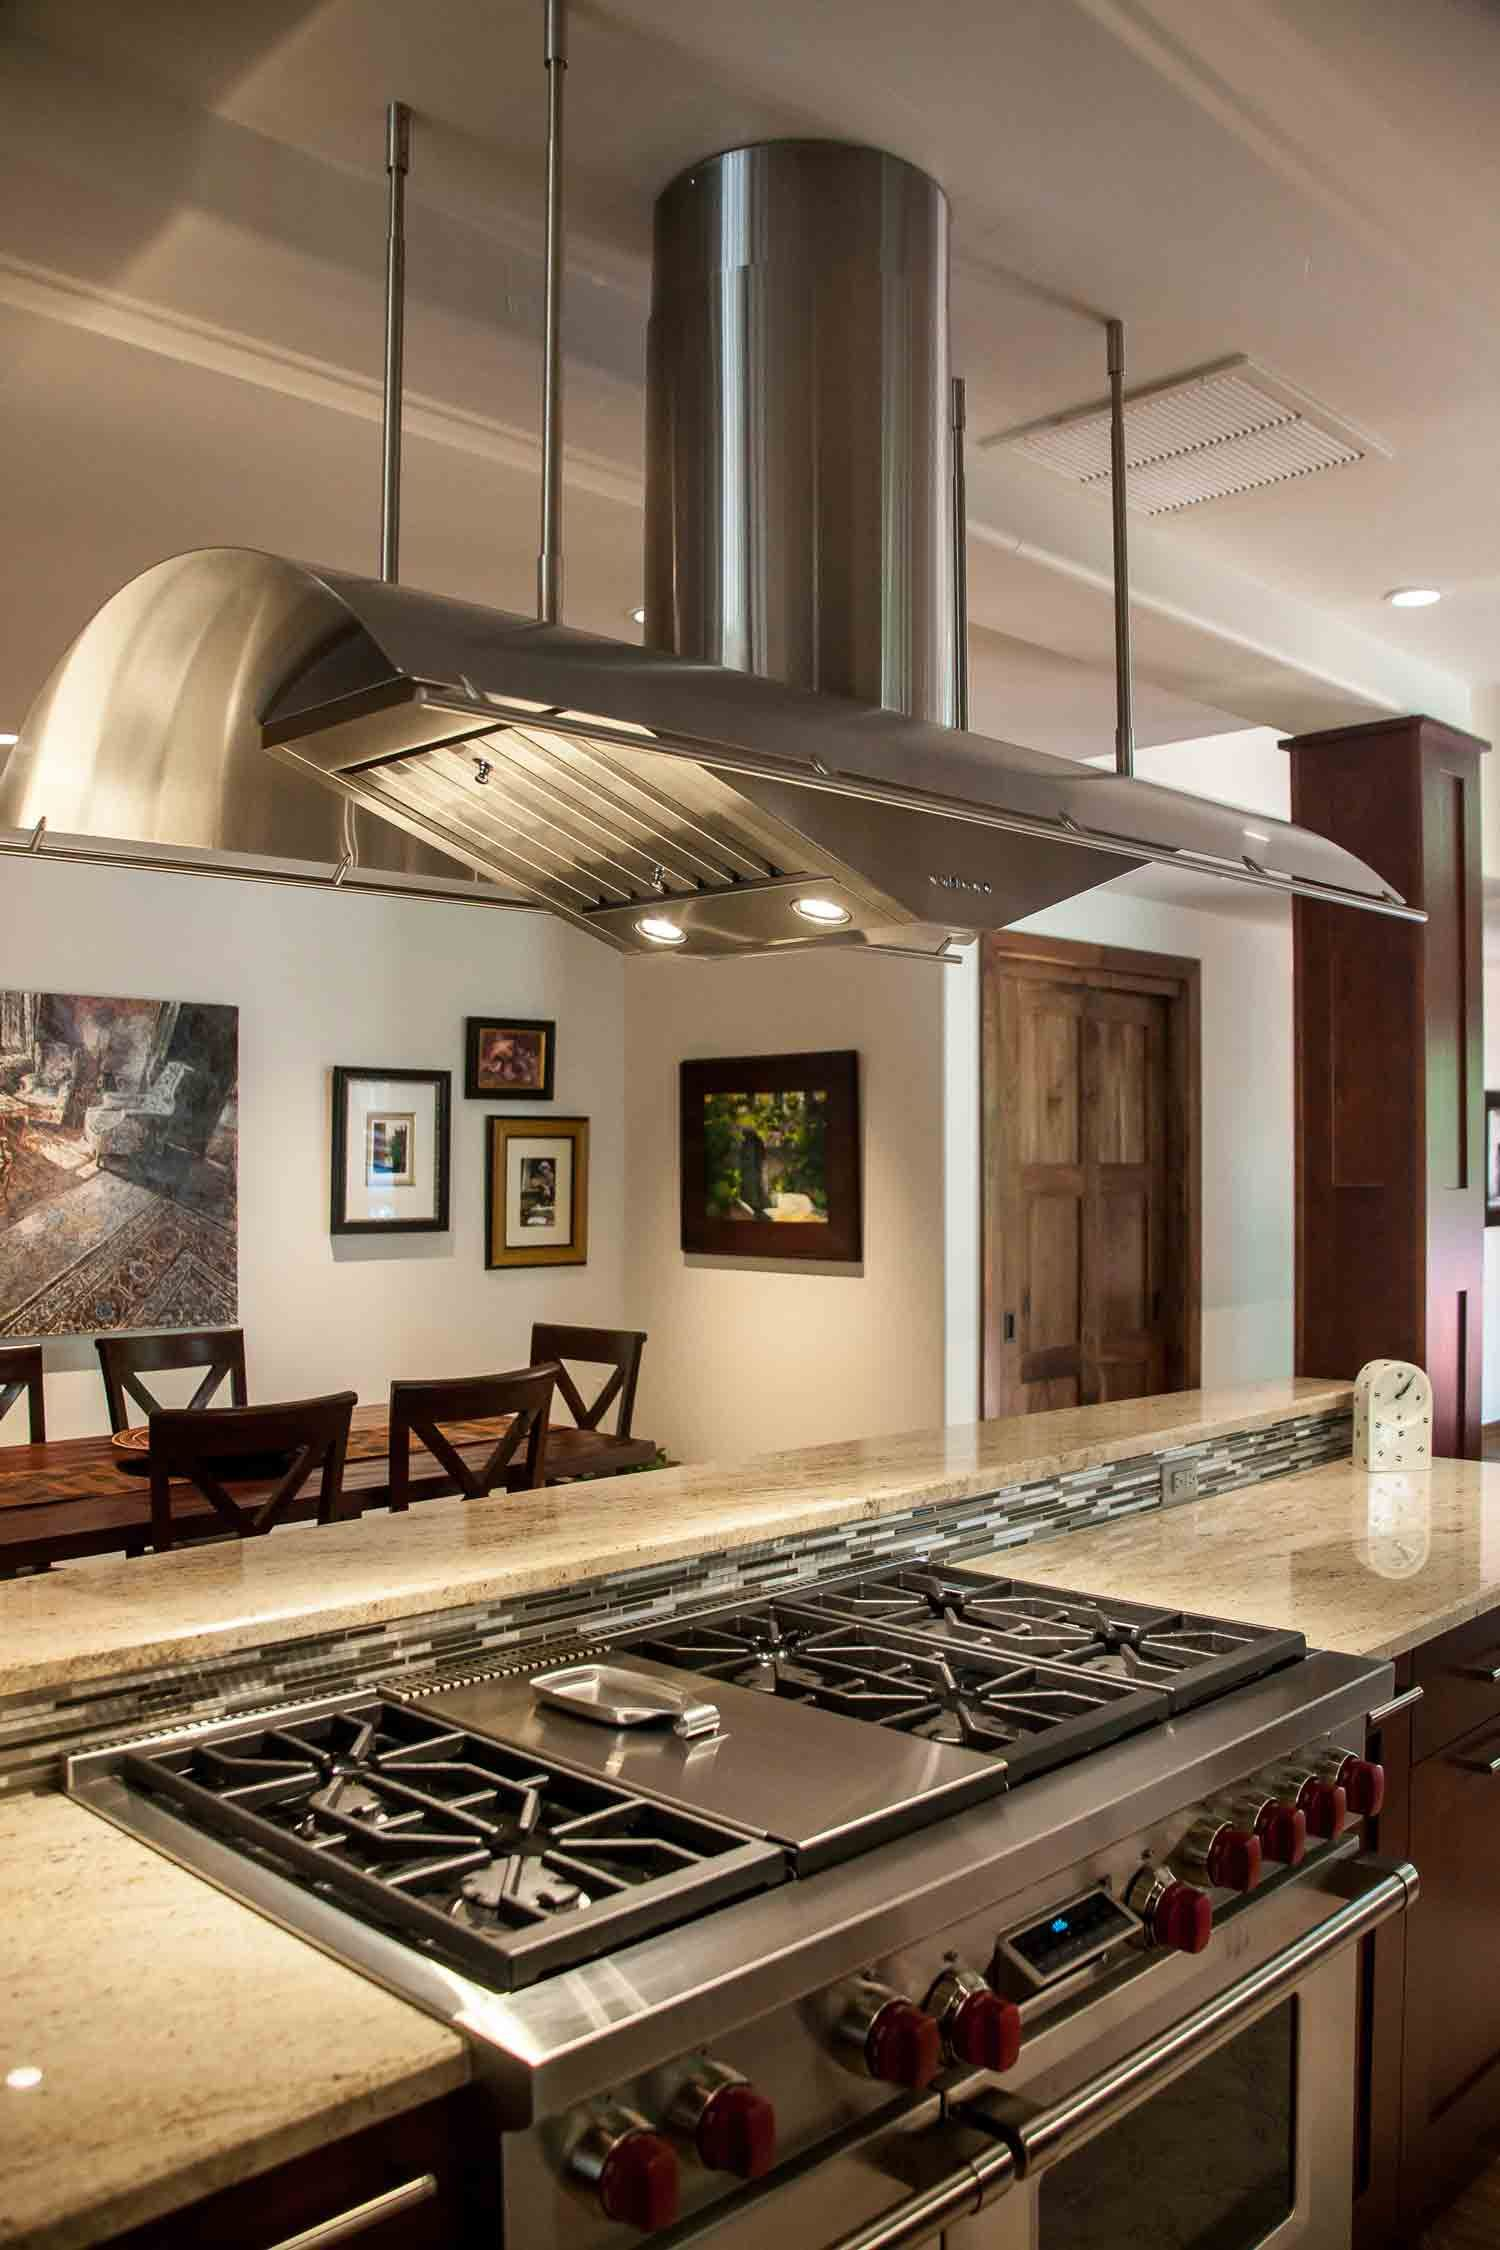 kitchen stove gas cheap valances for gorgeous stainless steel hood over center island 6 burner by wolf